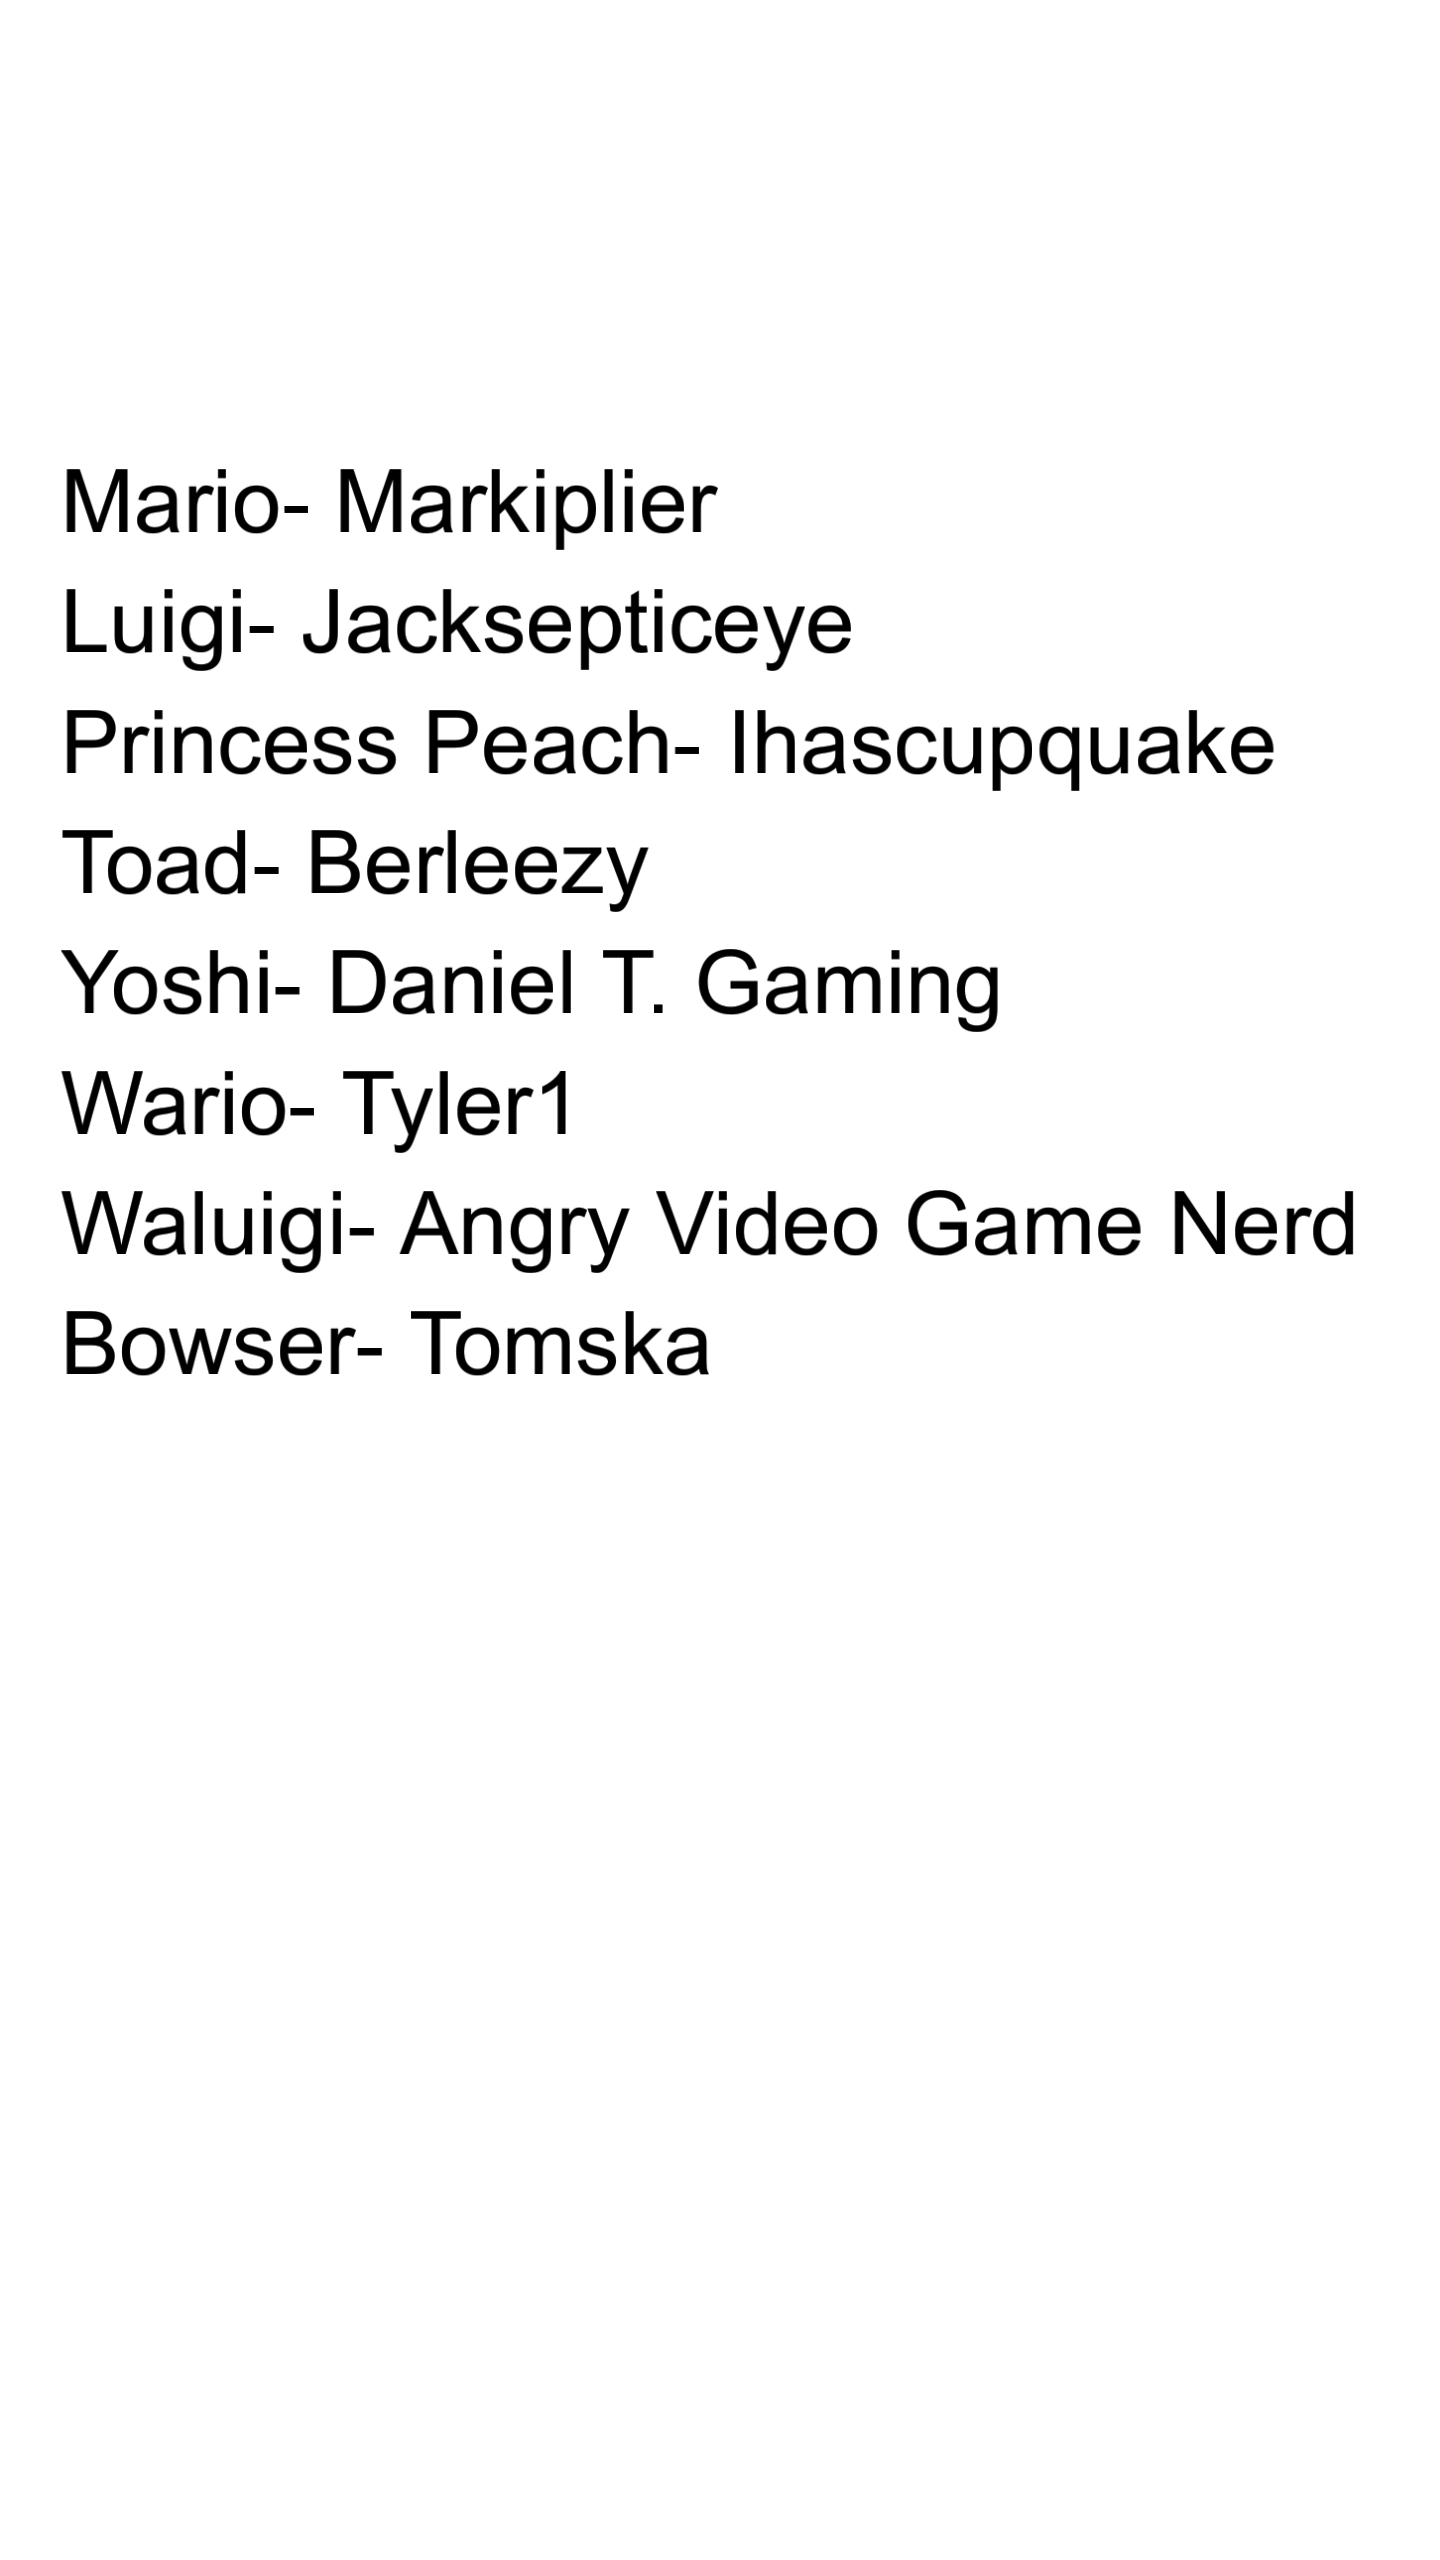 Mario Characters as Youtubers